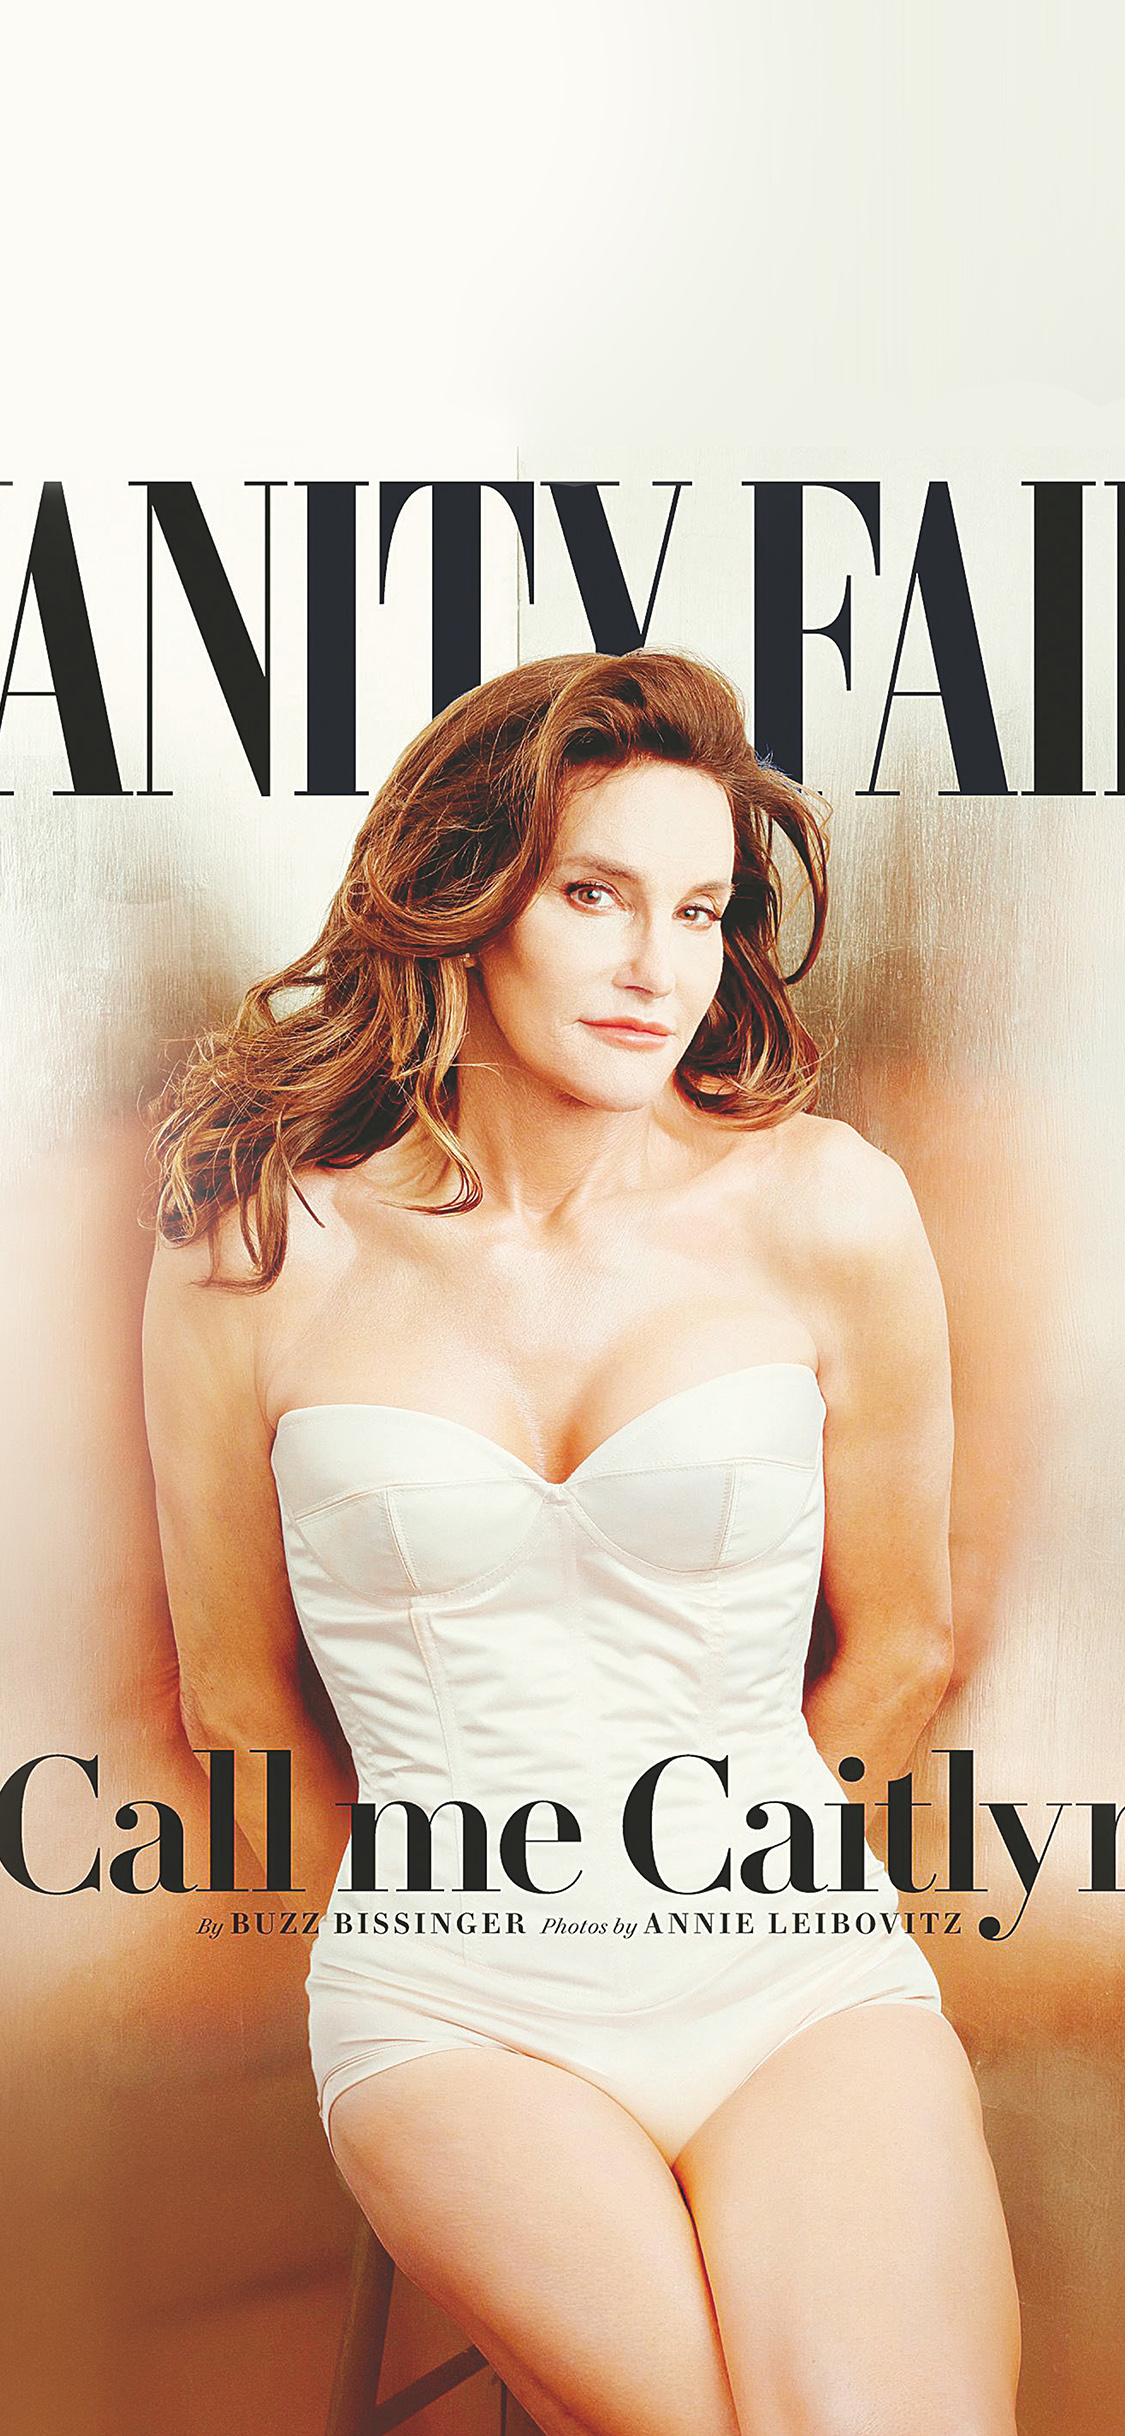 Lg Optimus Wallpaper Hd Hg31 Caitlyn Jenner Vanity Fair Model Papers Co